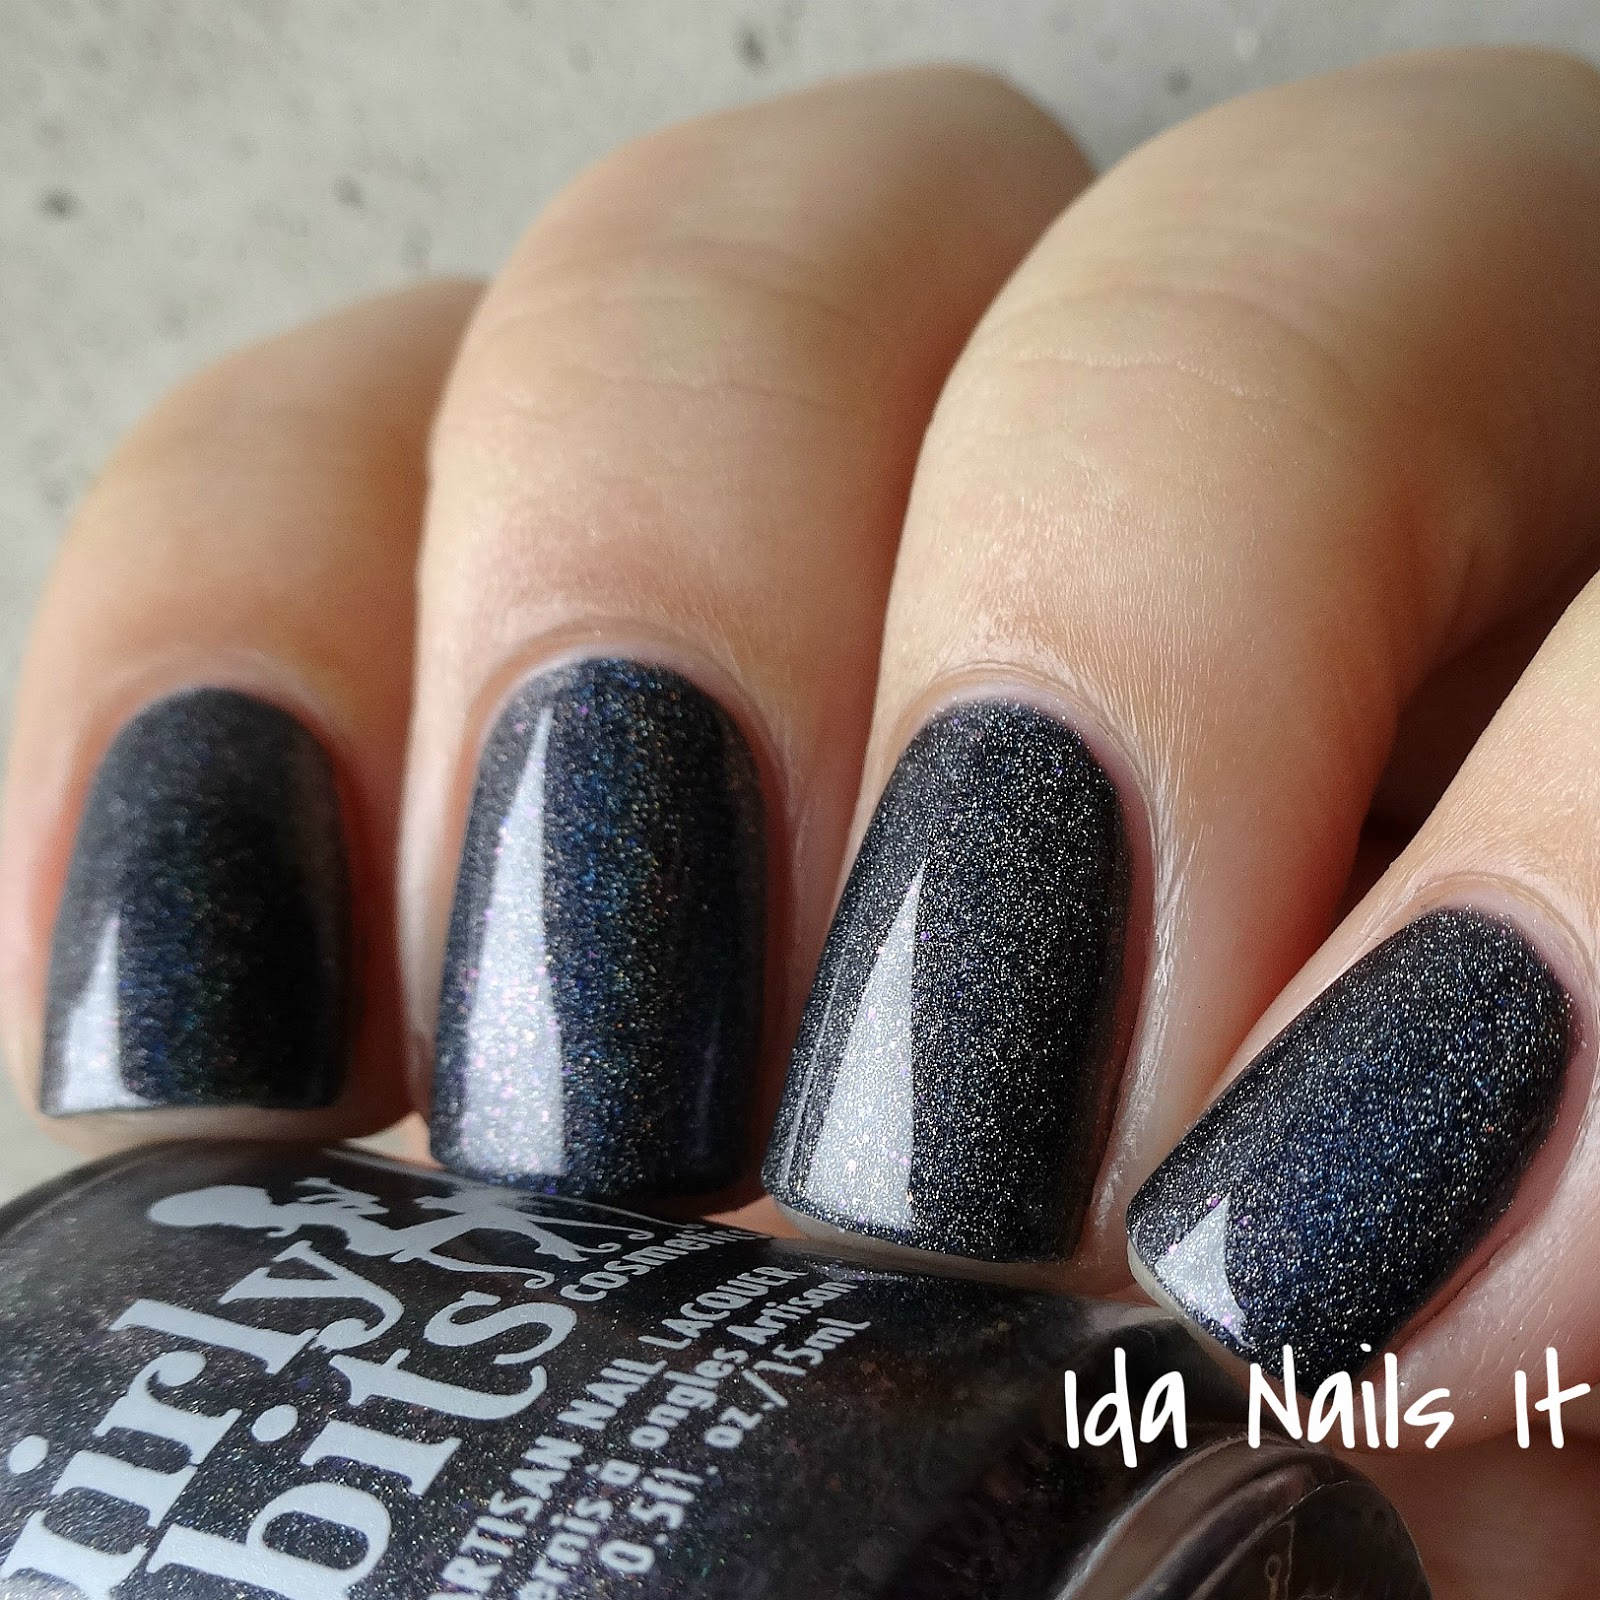 Ida Nails It: Girly Bits Hocus Pocus Collection: Swatches and Review